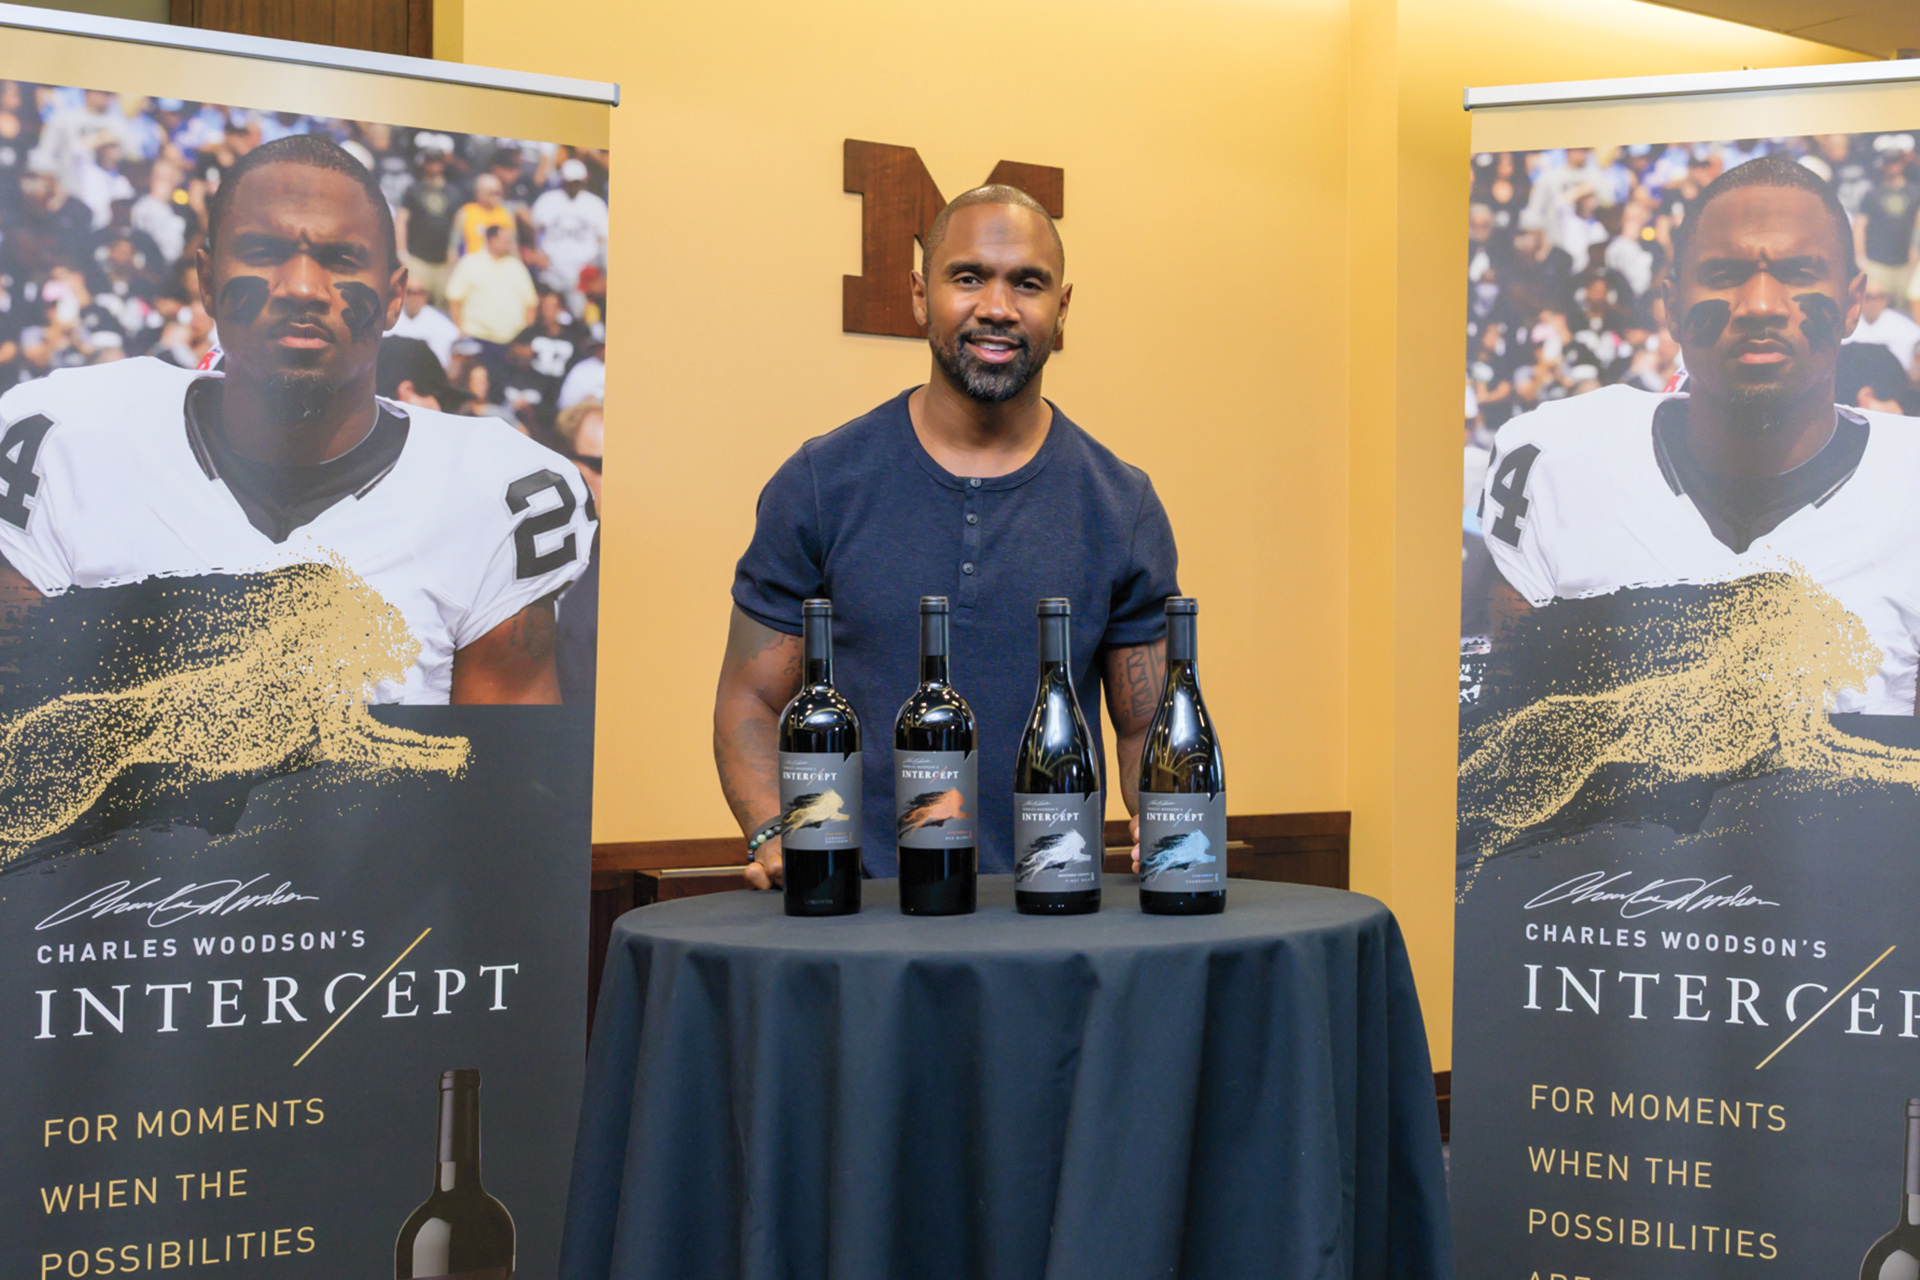 From Cornerback To Cabernet: Ex-nfl Star Charles Woodson On His New Wine Venture photo